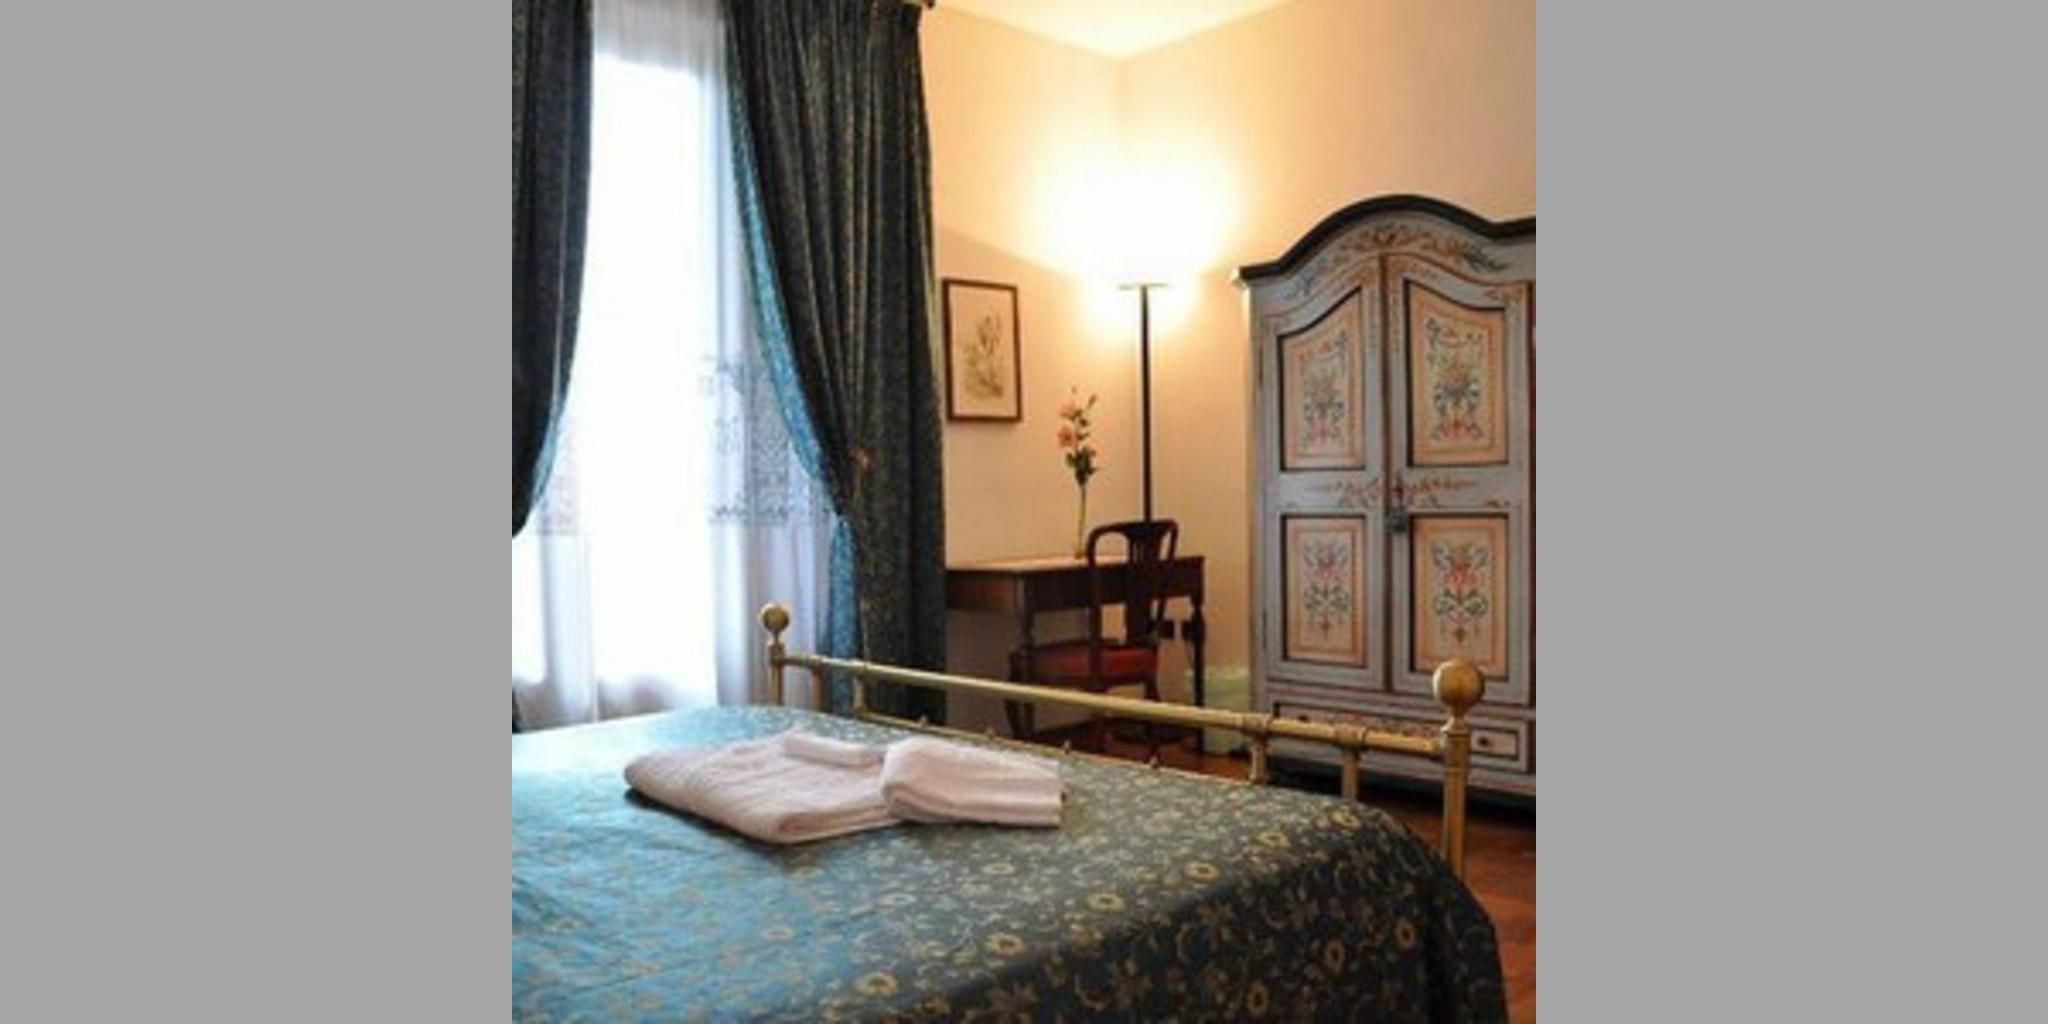 Bed & Breakfast Quarrata - Quarrata Centro